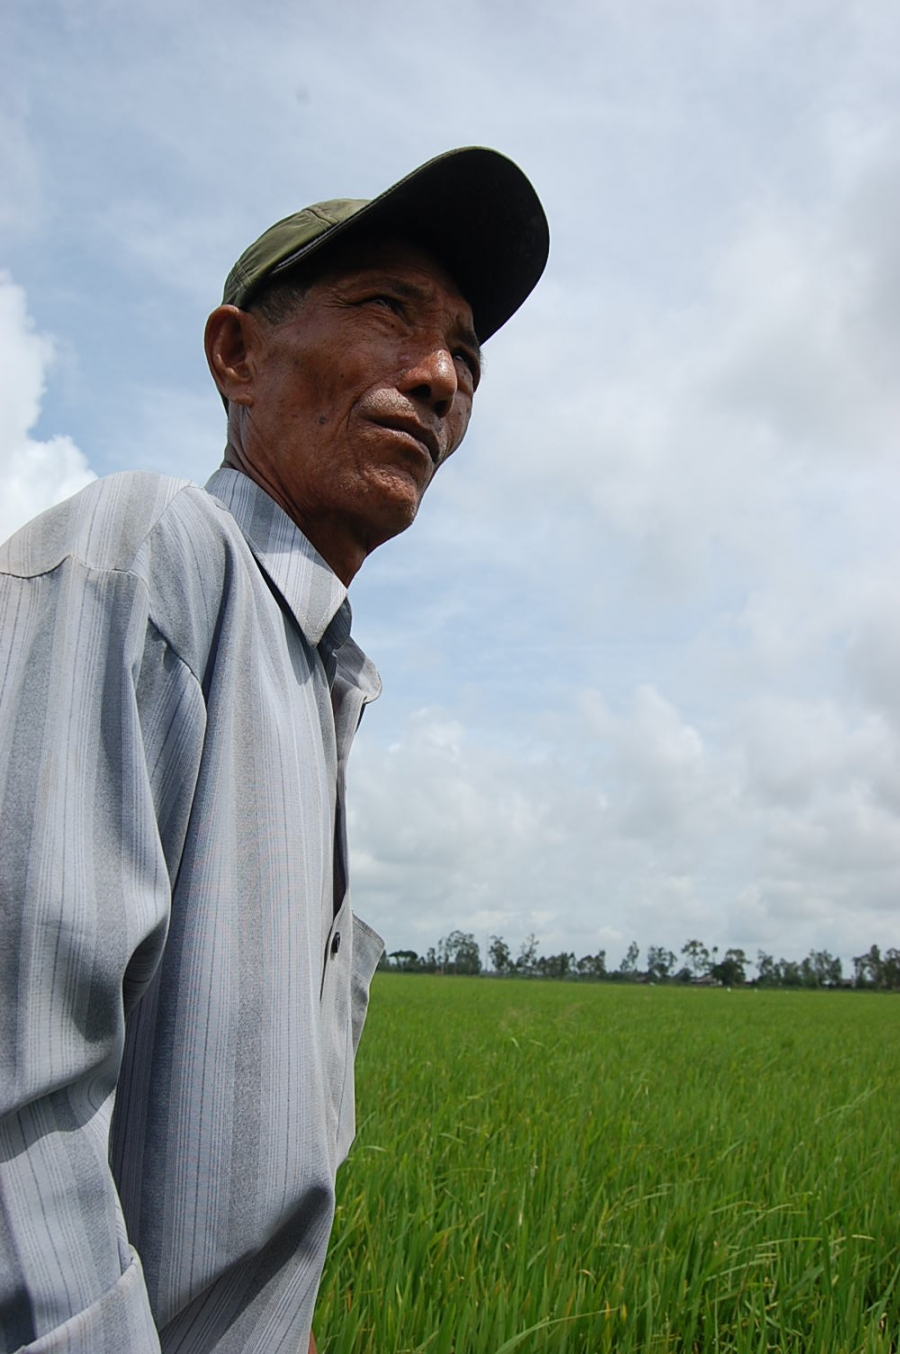 Rice farmer Hai Thach on his farm in Soc Trang Province.